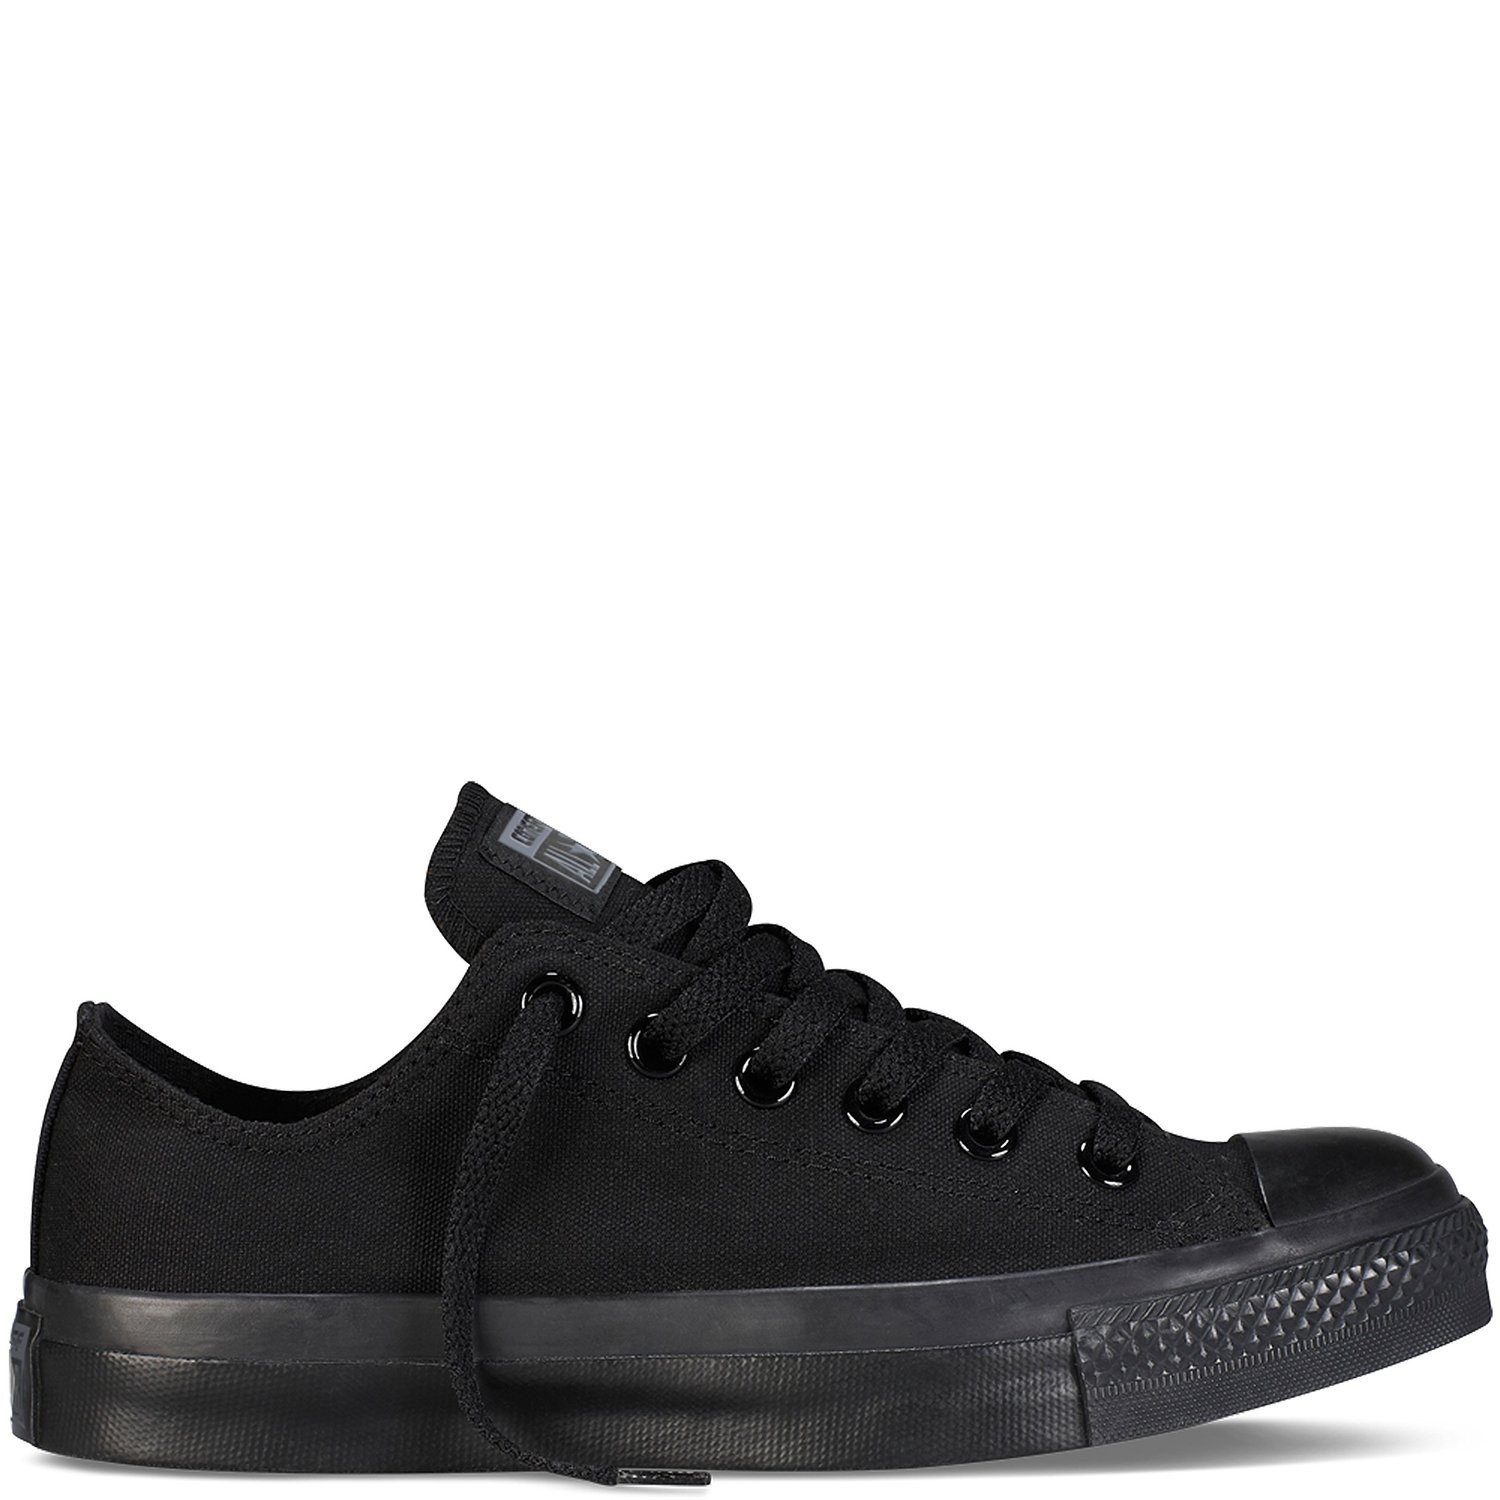 Converse Unisex Chuck Taylor All Star Ox Low Top Classic Black Monochrome Sneakers - 10.5 D(M) US